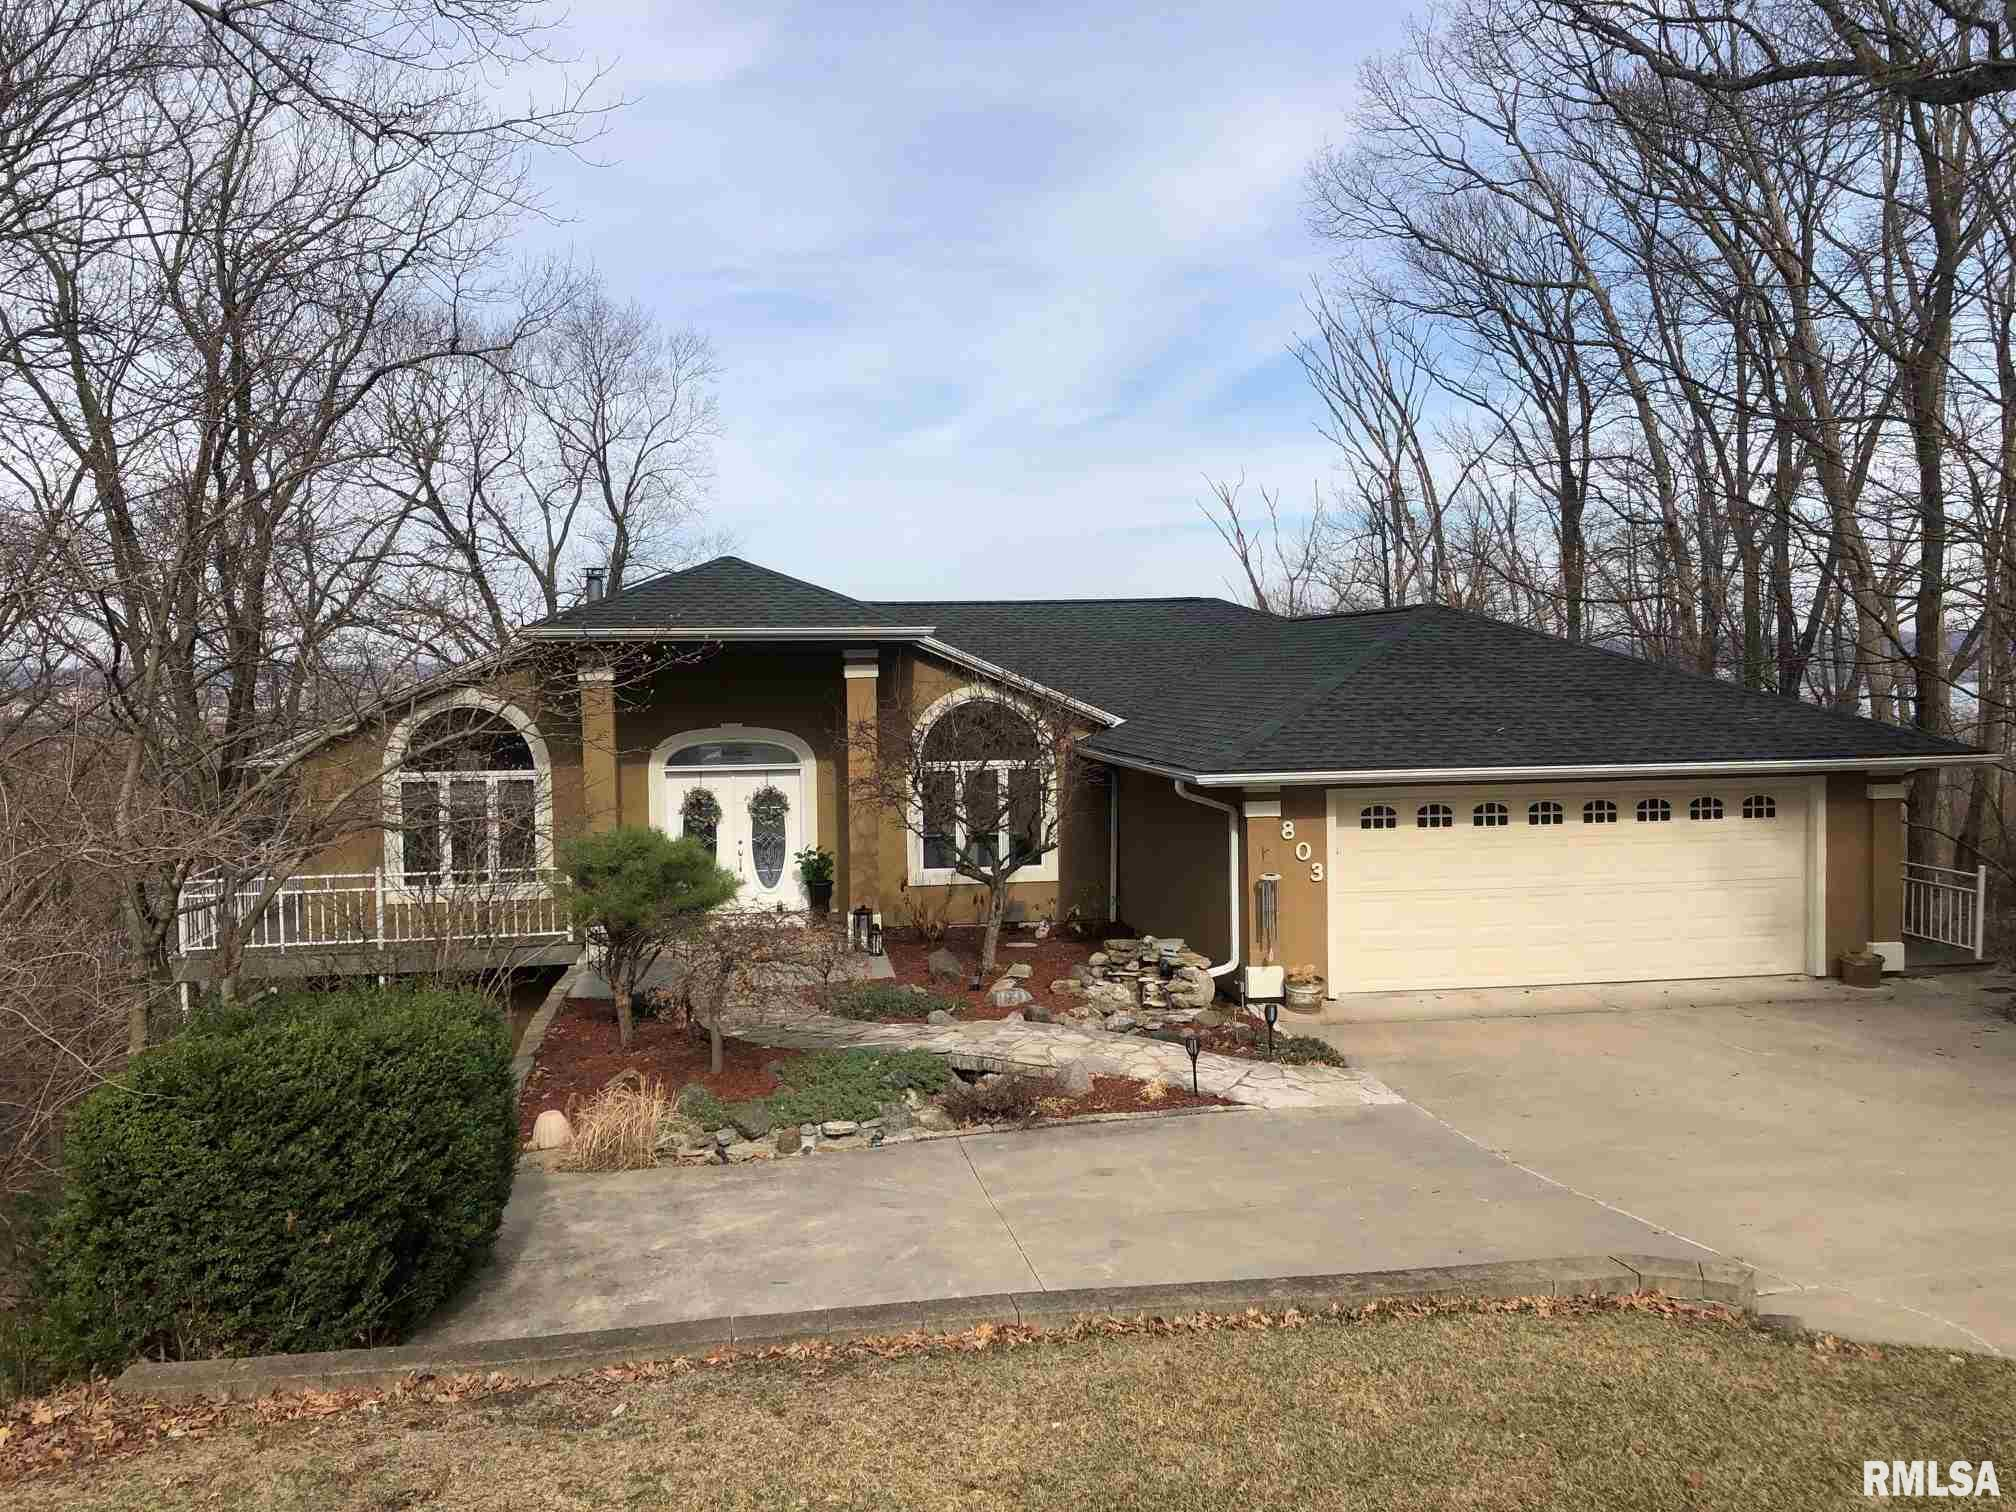 803 FONDULAC Property Photo - East Peoria, IL real estate listing